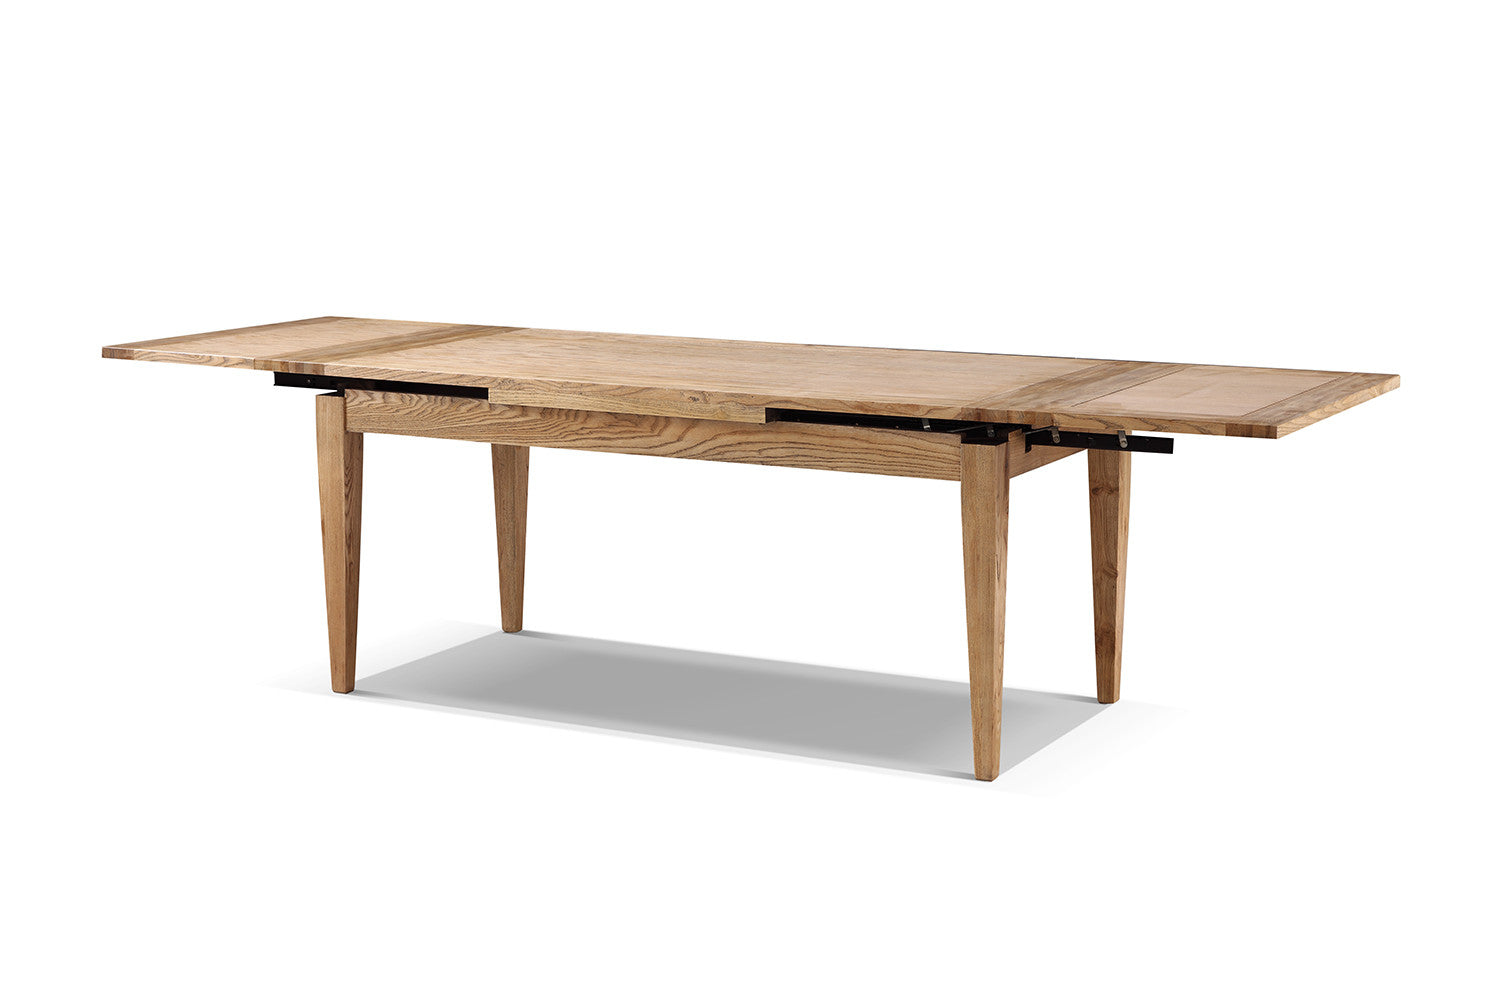 Table manger cottage en bois extensible rose moore Table salle a manger rectangulaire extensible